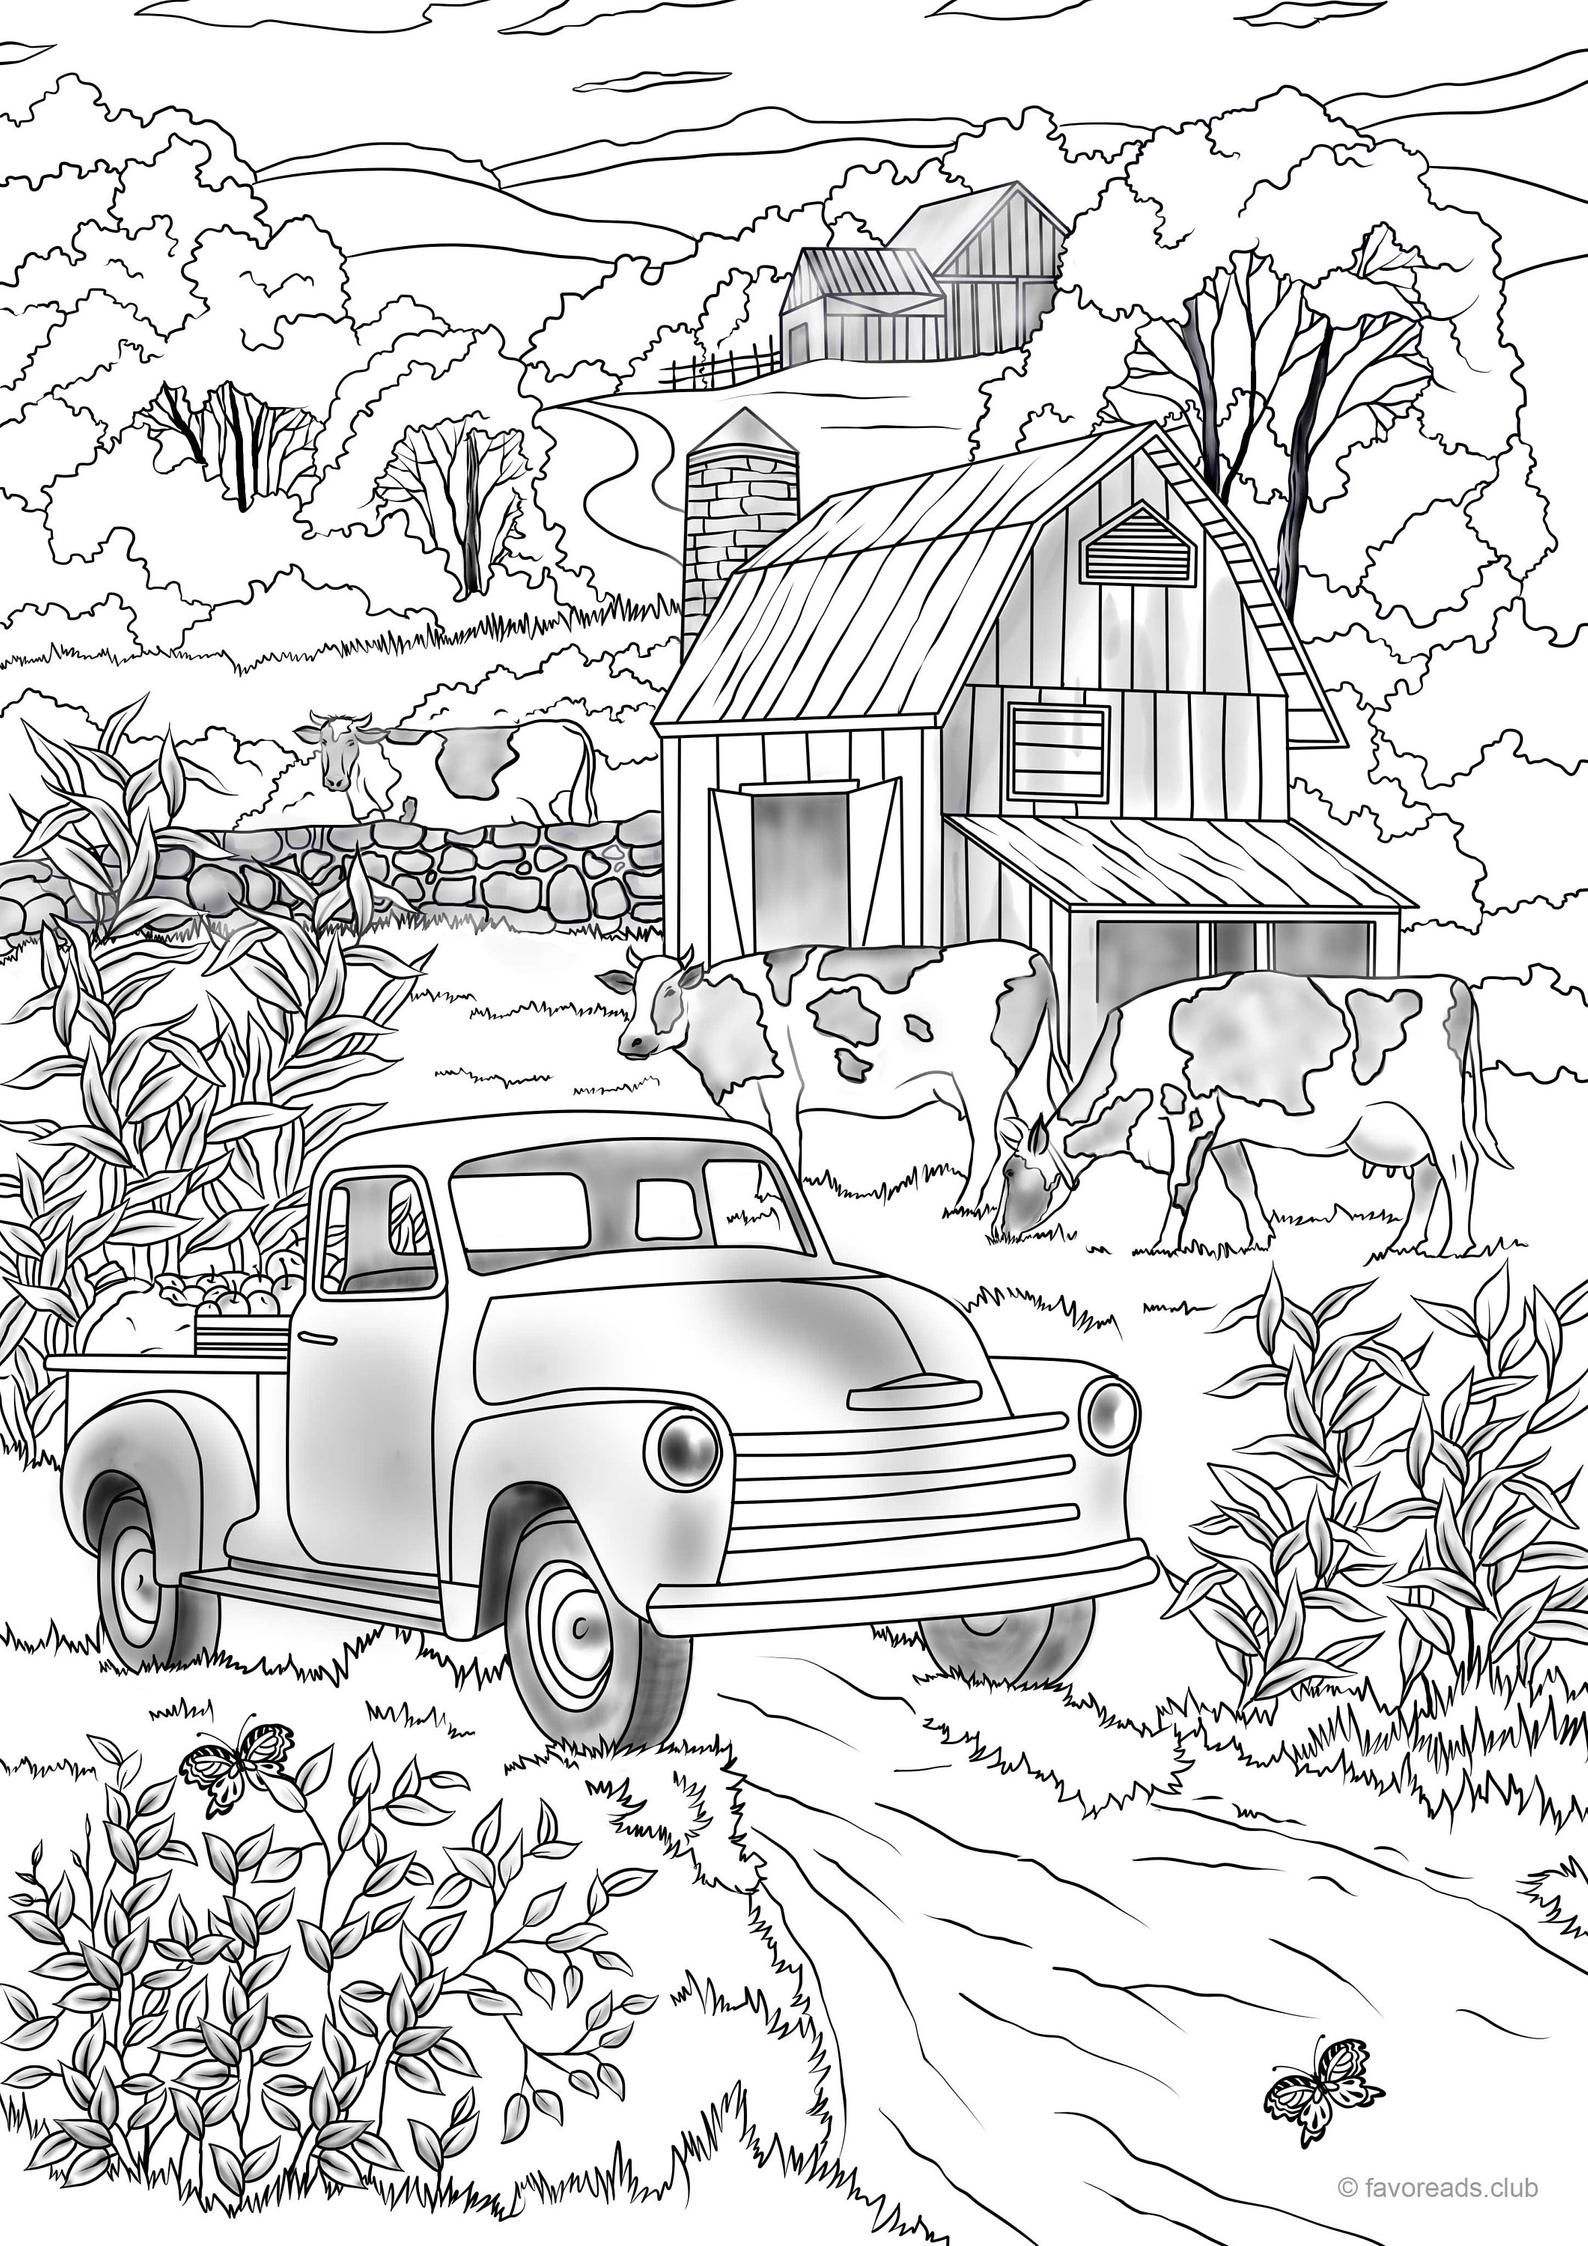 Country Car - Printable Adult Coloring Page from Favoreads (Coloring book pages for adults and kids, Coloring sheets, Coloring Designs) #adultcoloringpages